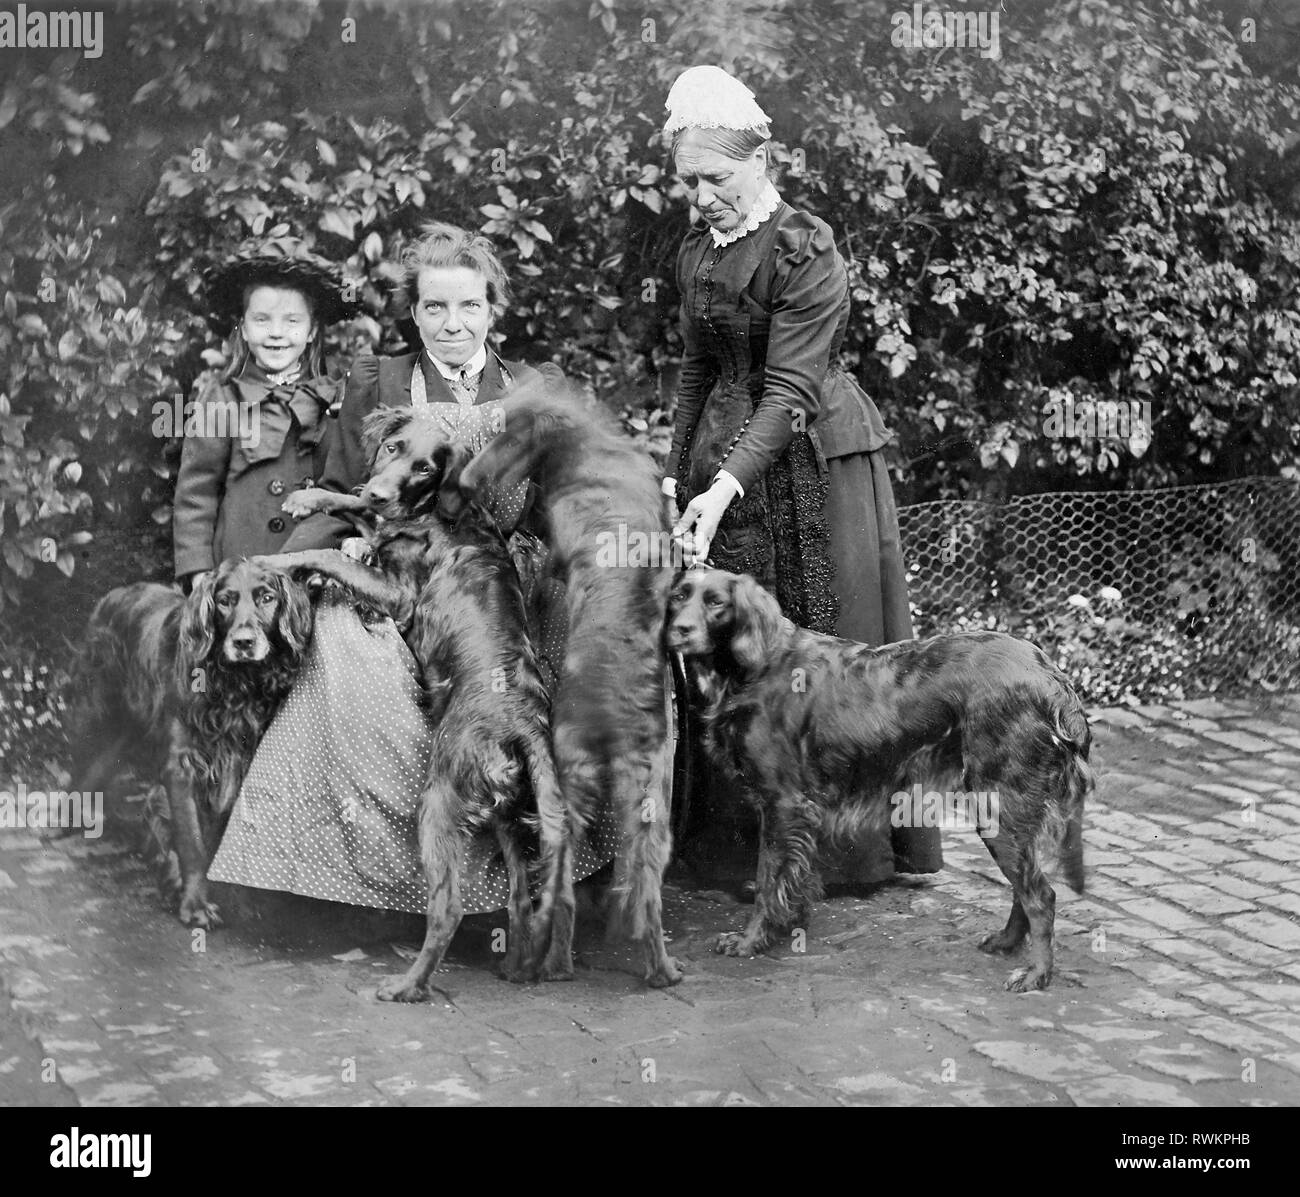 A Victorian or Edwardian group photograph of a young girl, two female adults and what looks like four Flat-coated Retriever dogs. - Stock Image